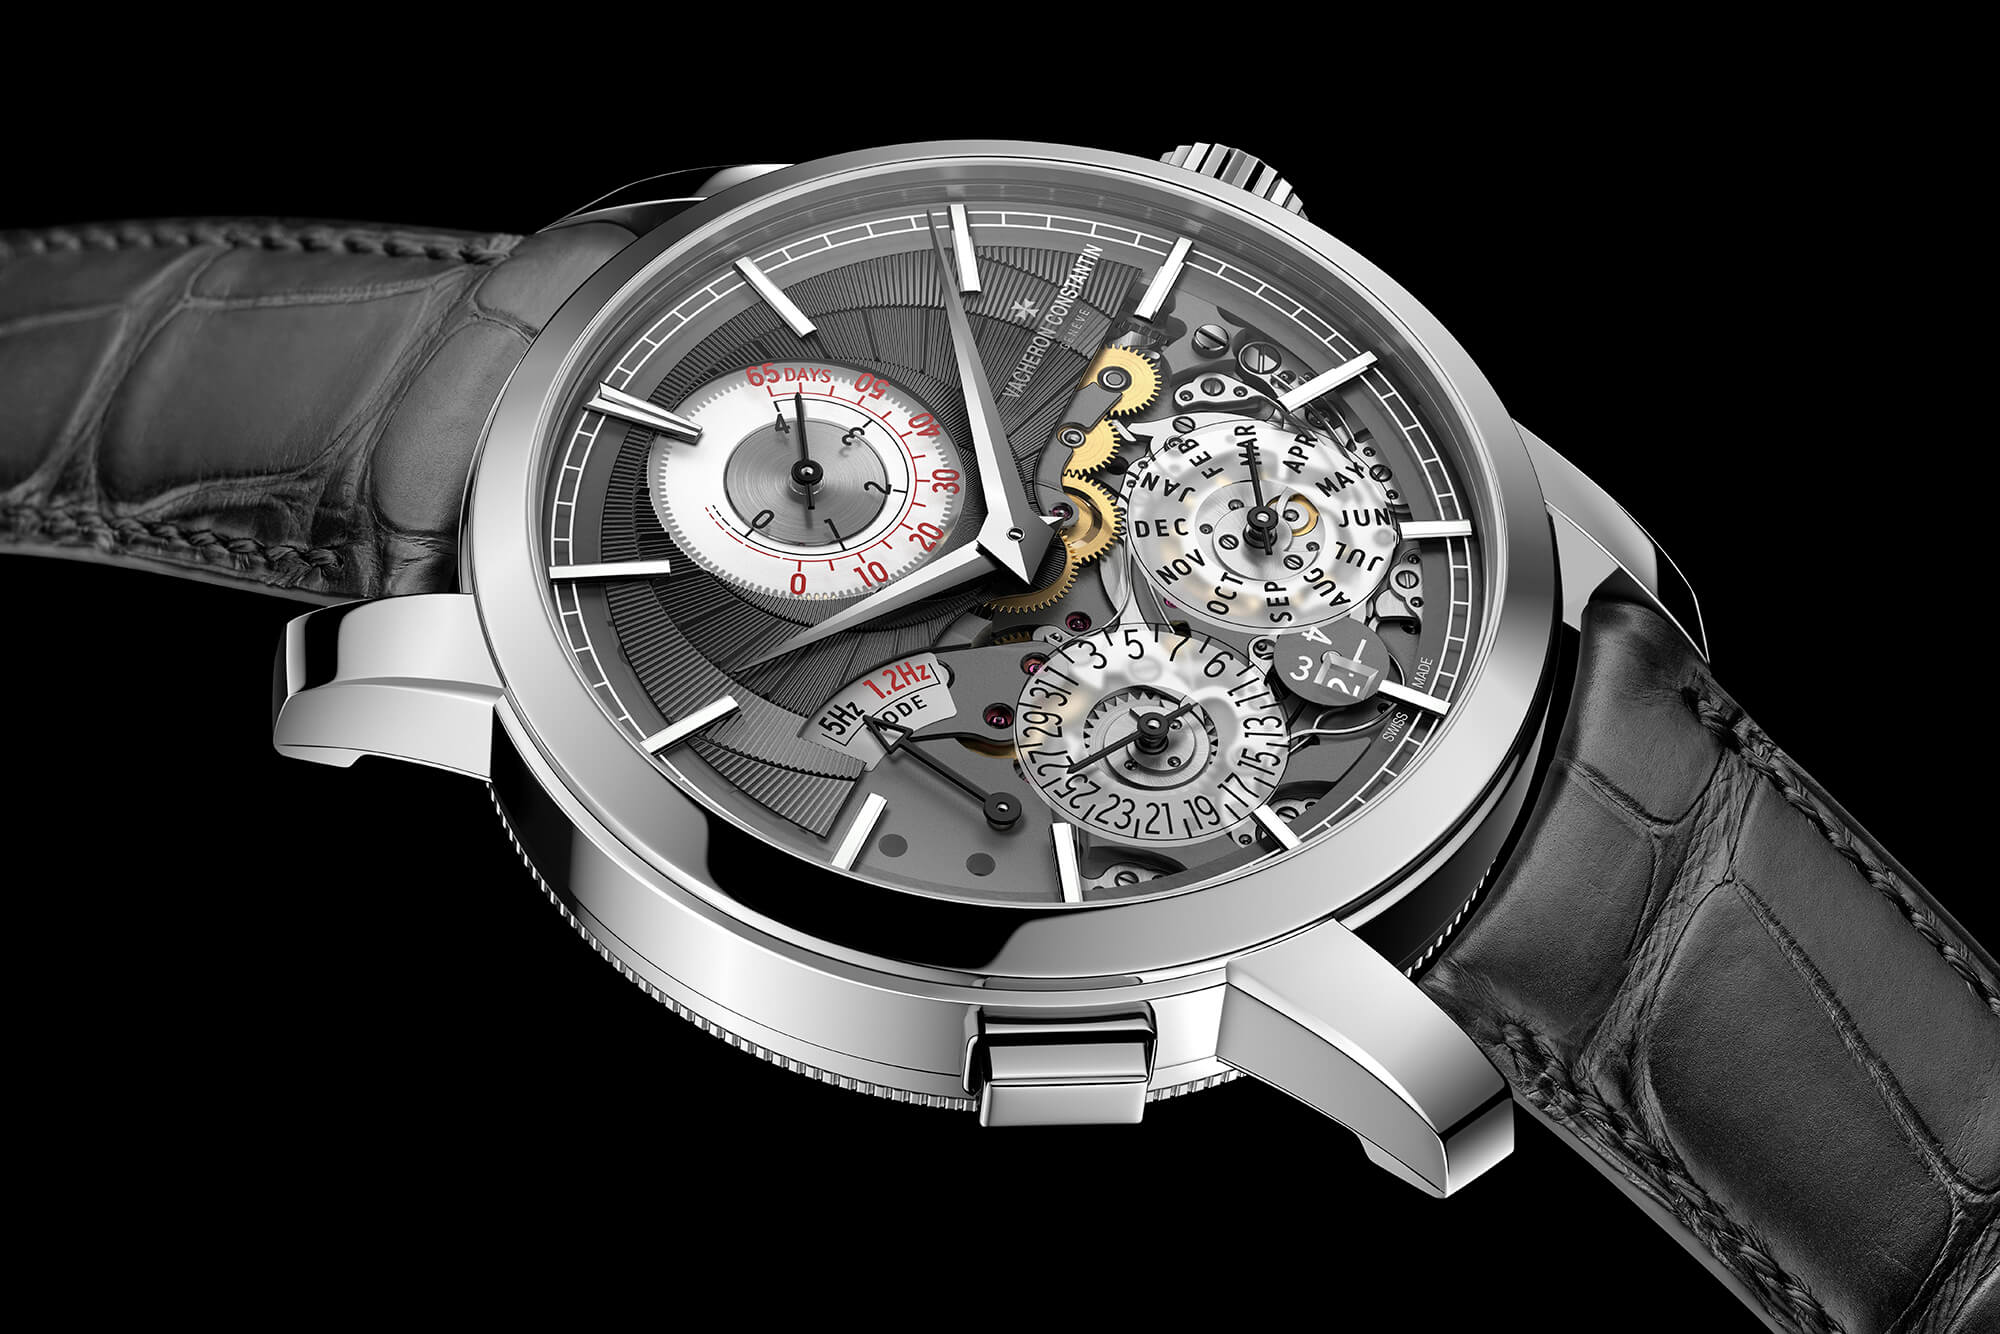 Vacheron Constantin Traditionnelle Twin Beat Perpetual Calendar Watch